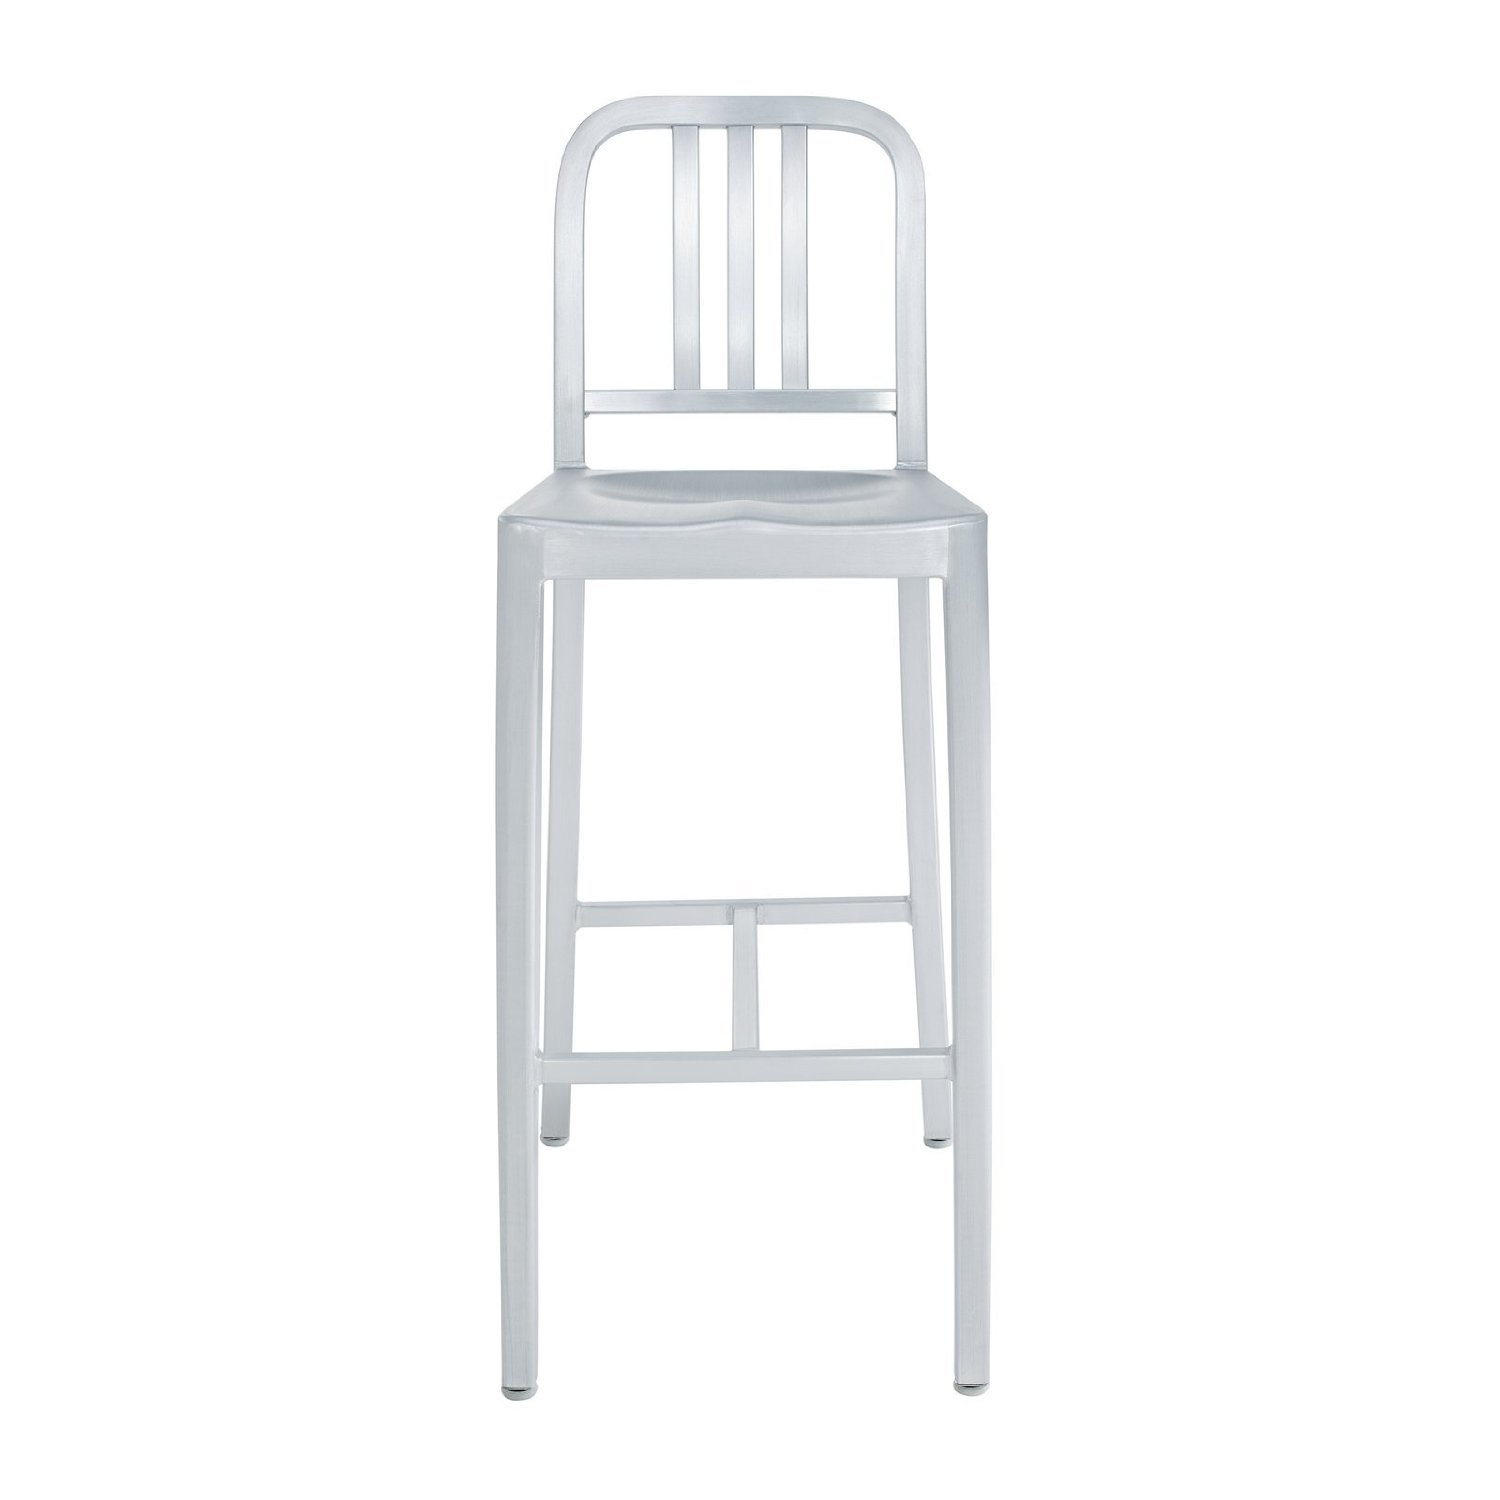 Aluminum Outdoor Bar Stool (C1210-30)